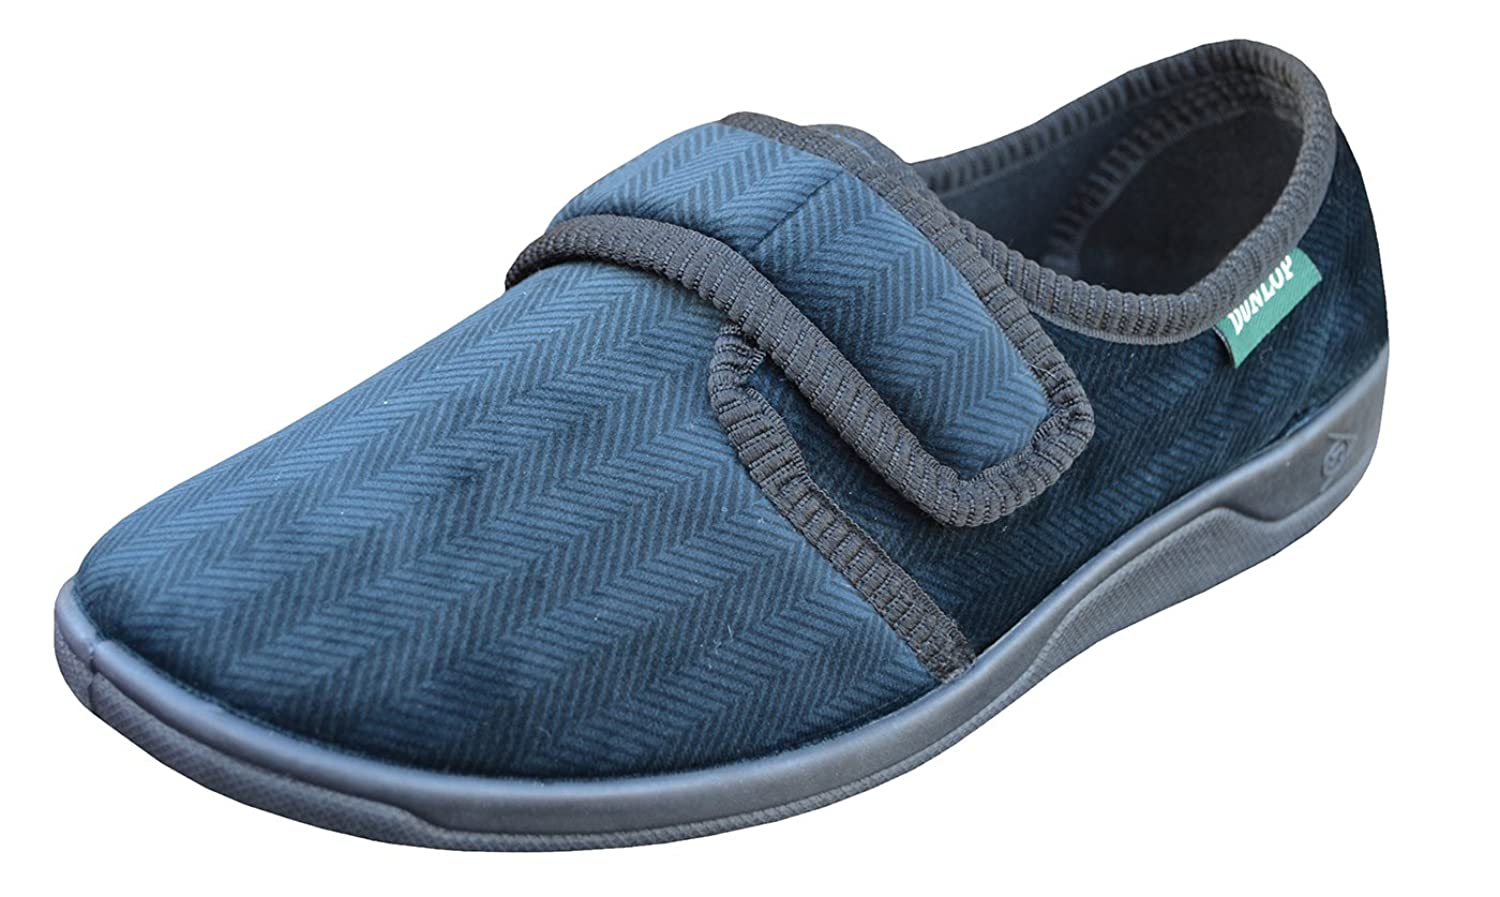 Dunlop Mens Touch Fastening Adjustable Comfort Slippers Sizes 6-12